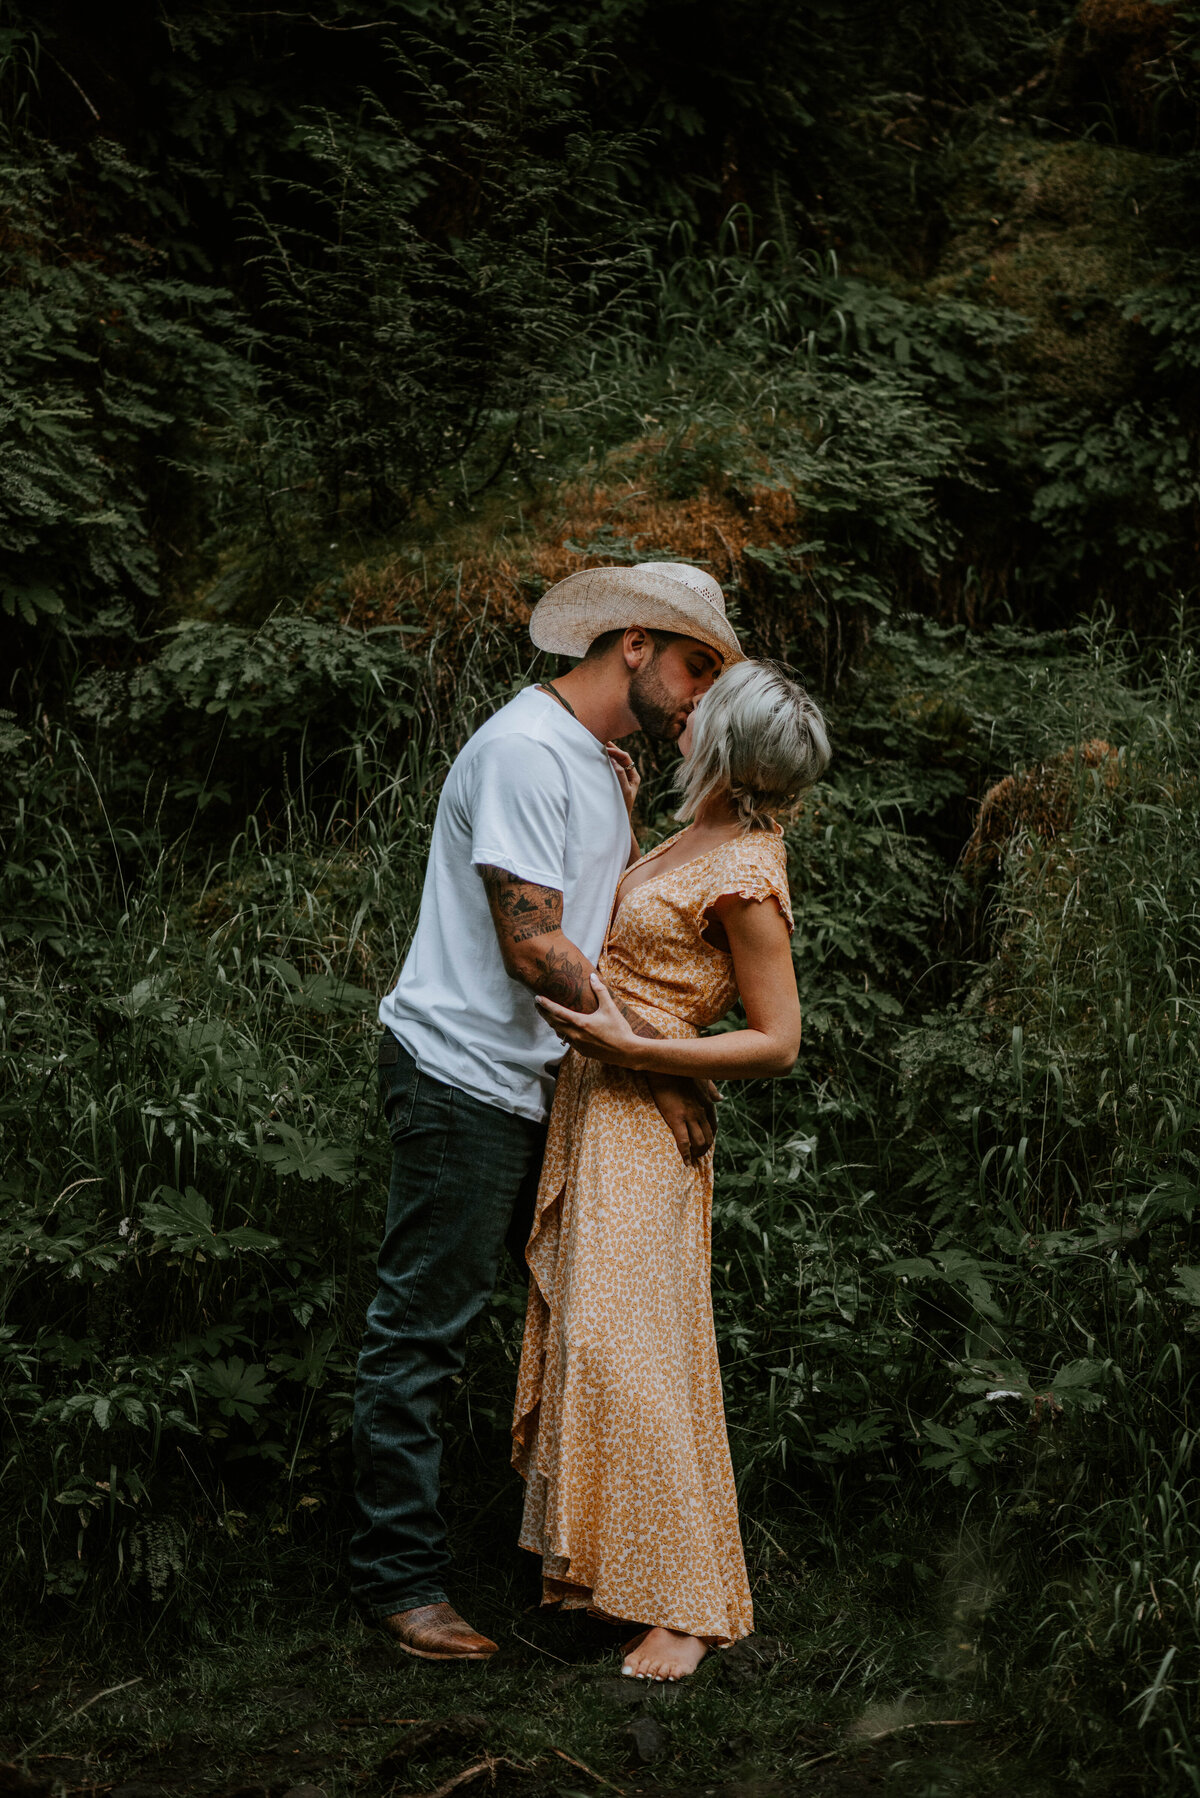 sahalie-falls-oregon-engagement-elopement-photographer-central-waterfall-bend-forest-old-growth-7129